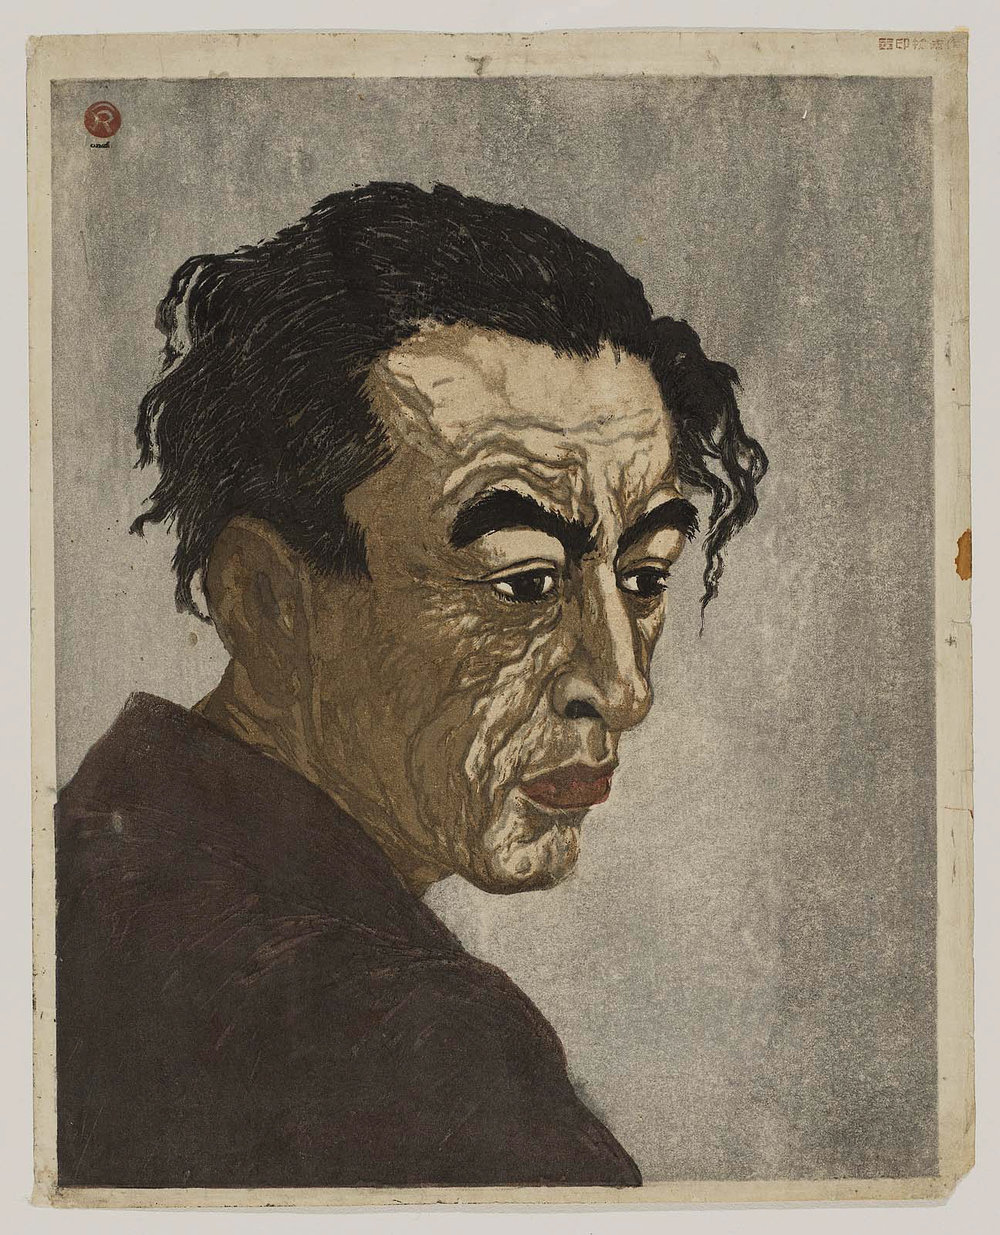 Onichi Koshiro, Portraint of the Poet Hagiwara Sakuto (1886-1942)